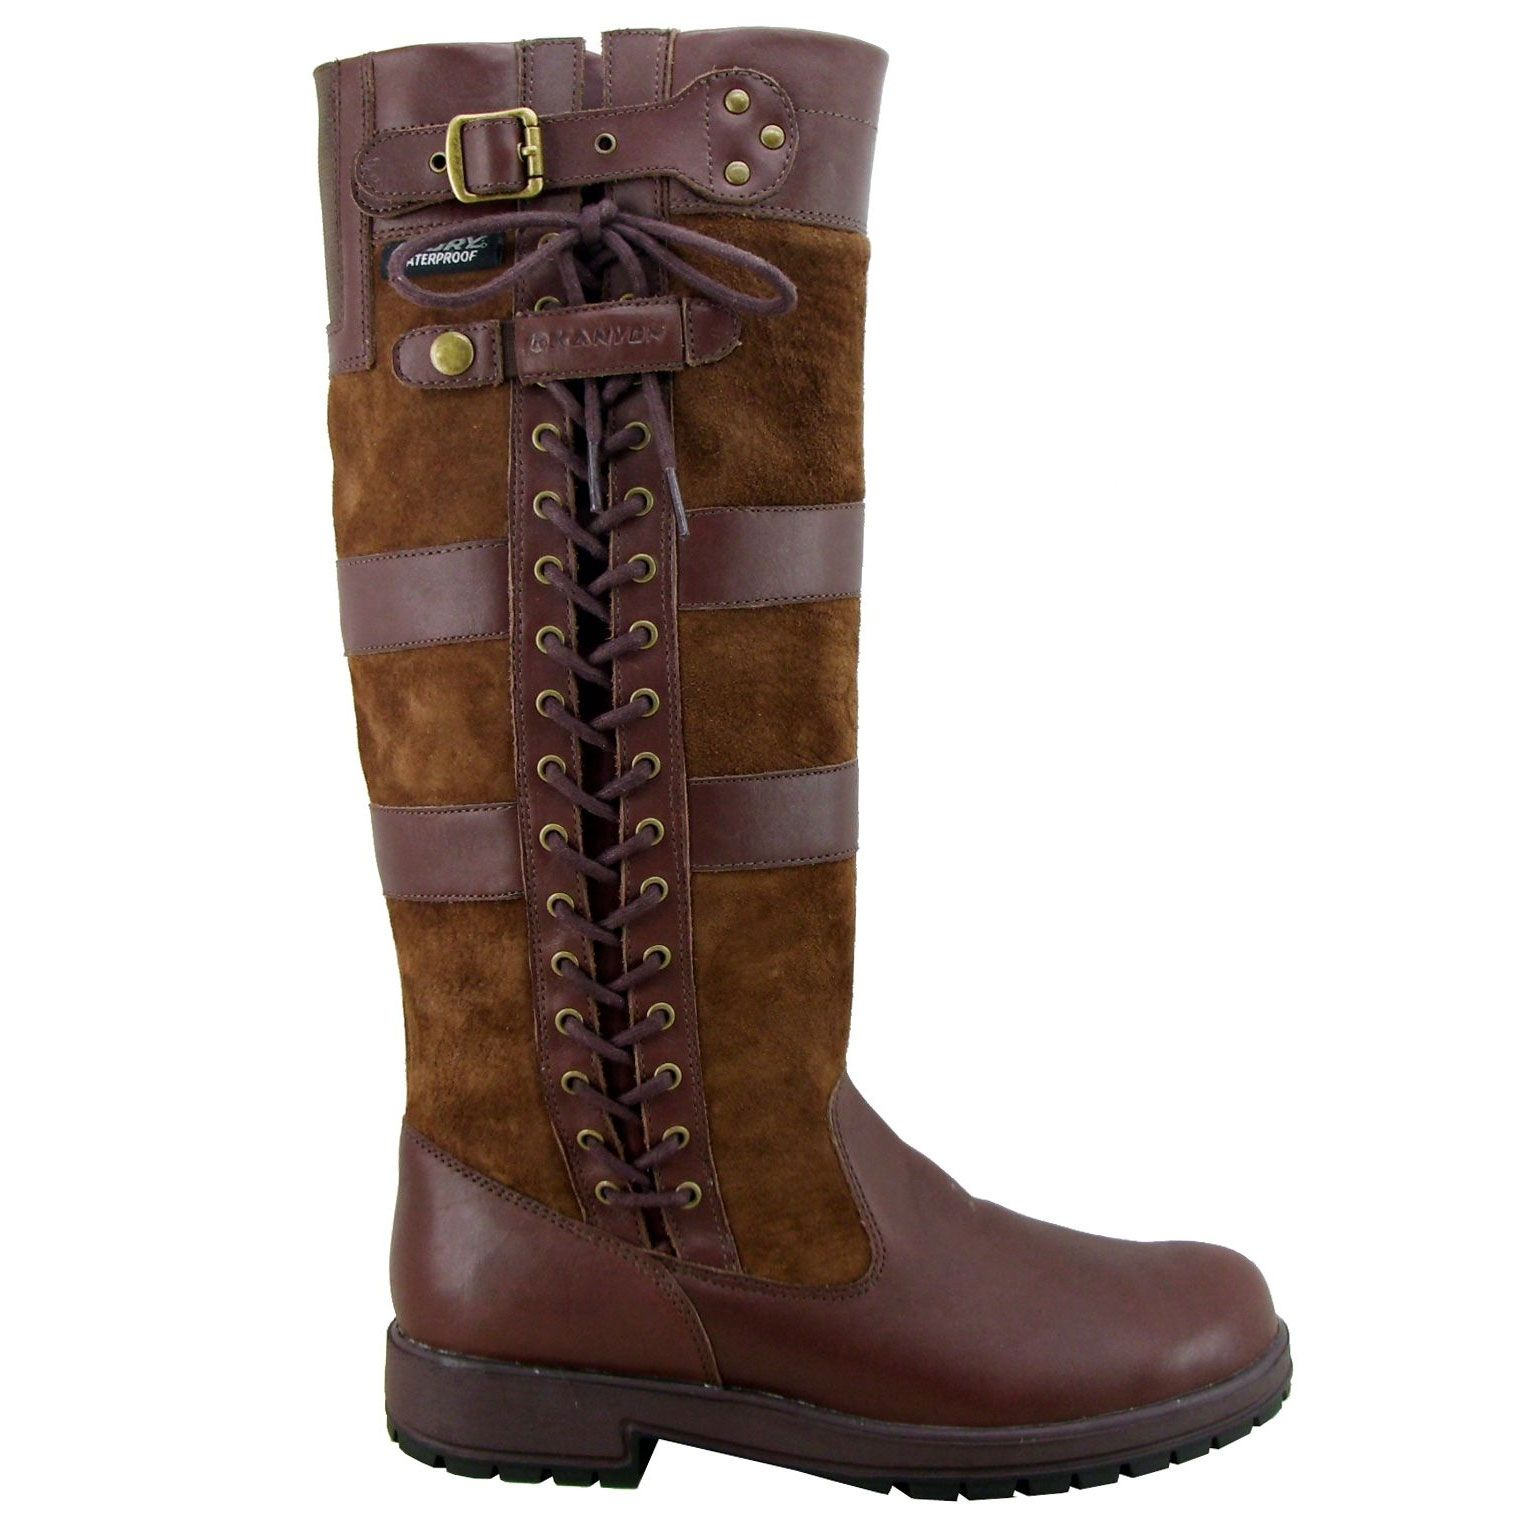 Kanyon Outdoor Yew Country Boot Unisex Chocolate Waterproof Leather Boots Boots Wide Boots